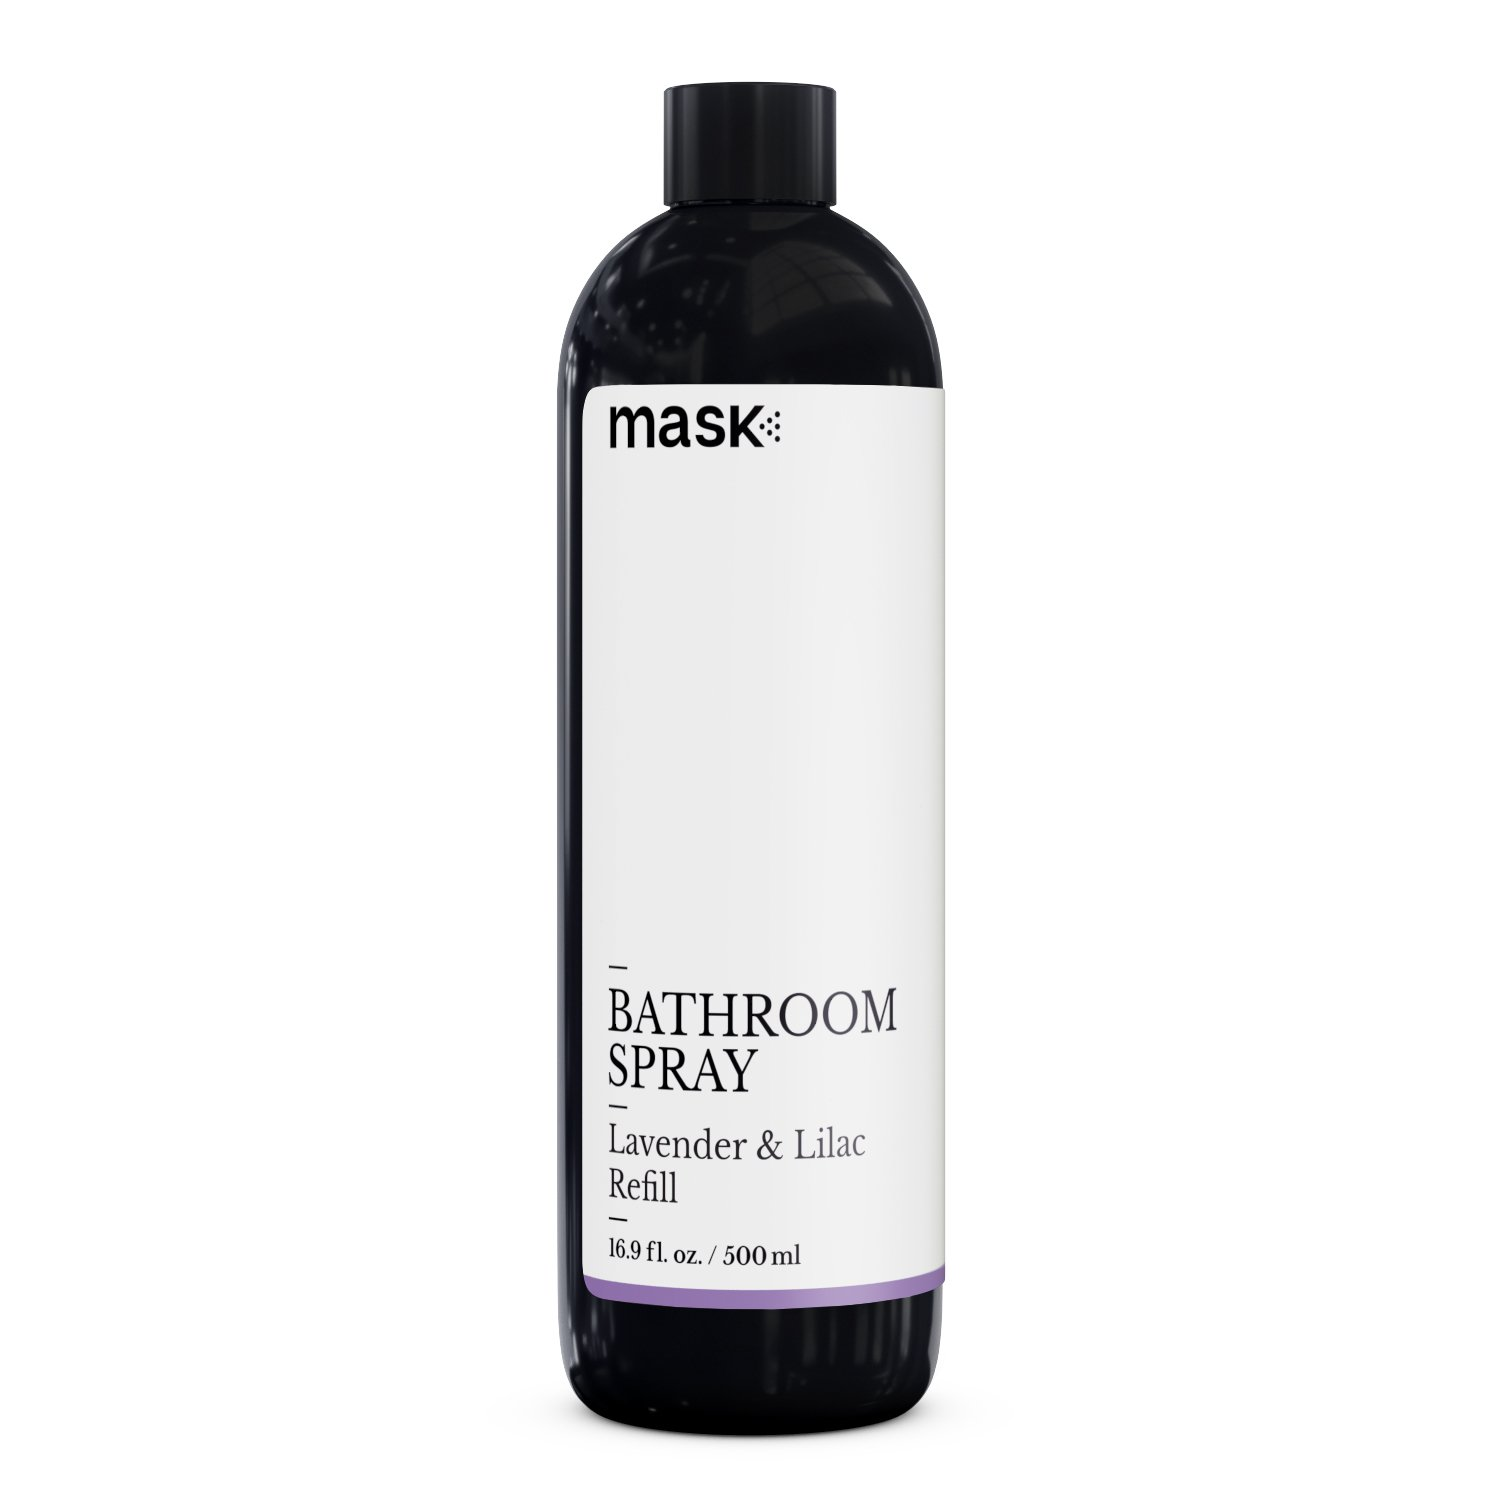 Mask Bathroom Spray Lavender and Lilac 16-Ounce Refill, Toilet Spray, Before You Go Deodorizer, Best Value Air Freshener Poo Poop Spray, Perfect for Travel, Risk Free Offer! by Mask (Image #1)